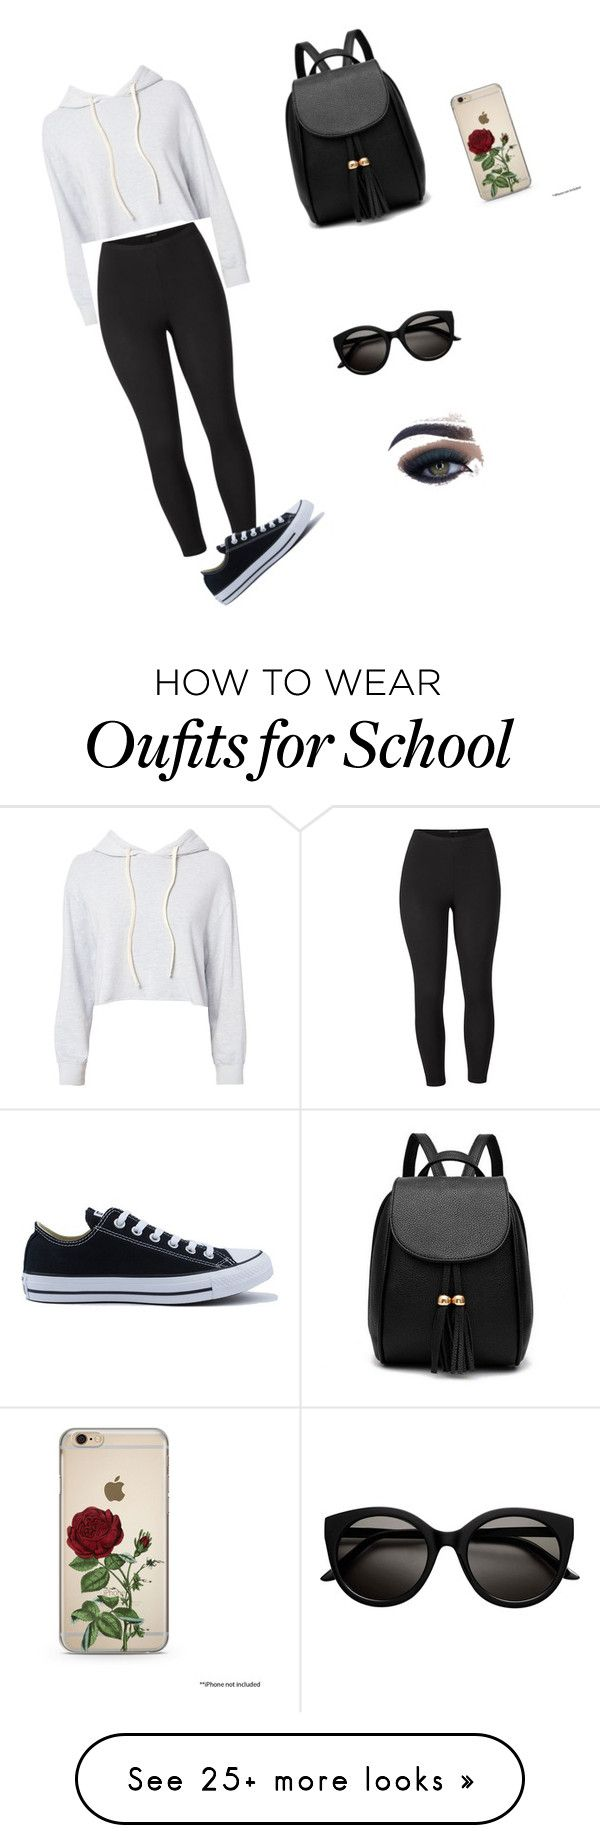 """""""Firts day of school"""" by nixiem87 on Polyvore featuring Monrow, Venus, Converse, Too Faced Cosmetics and plus size clothing"""